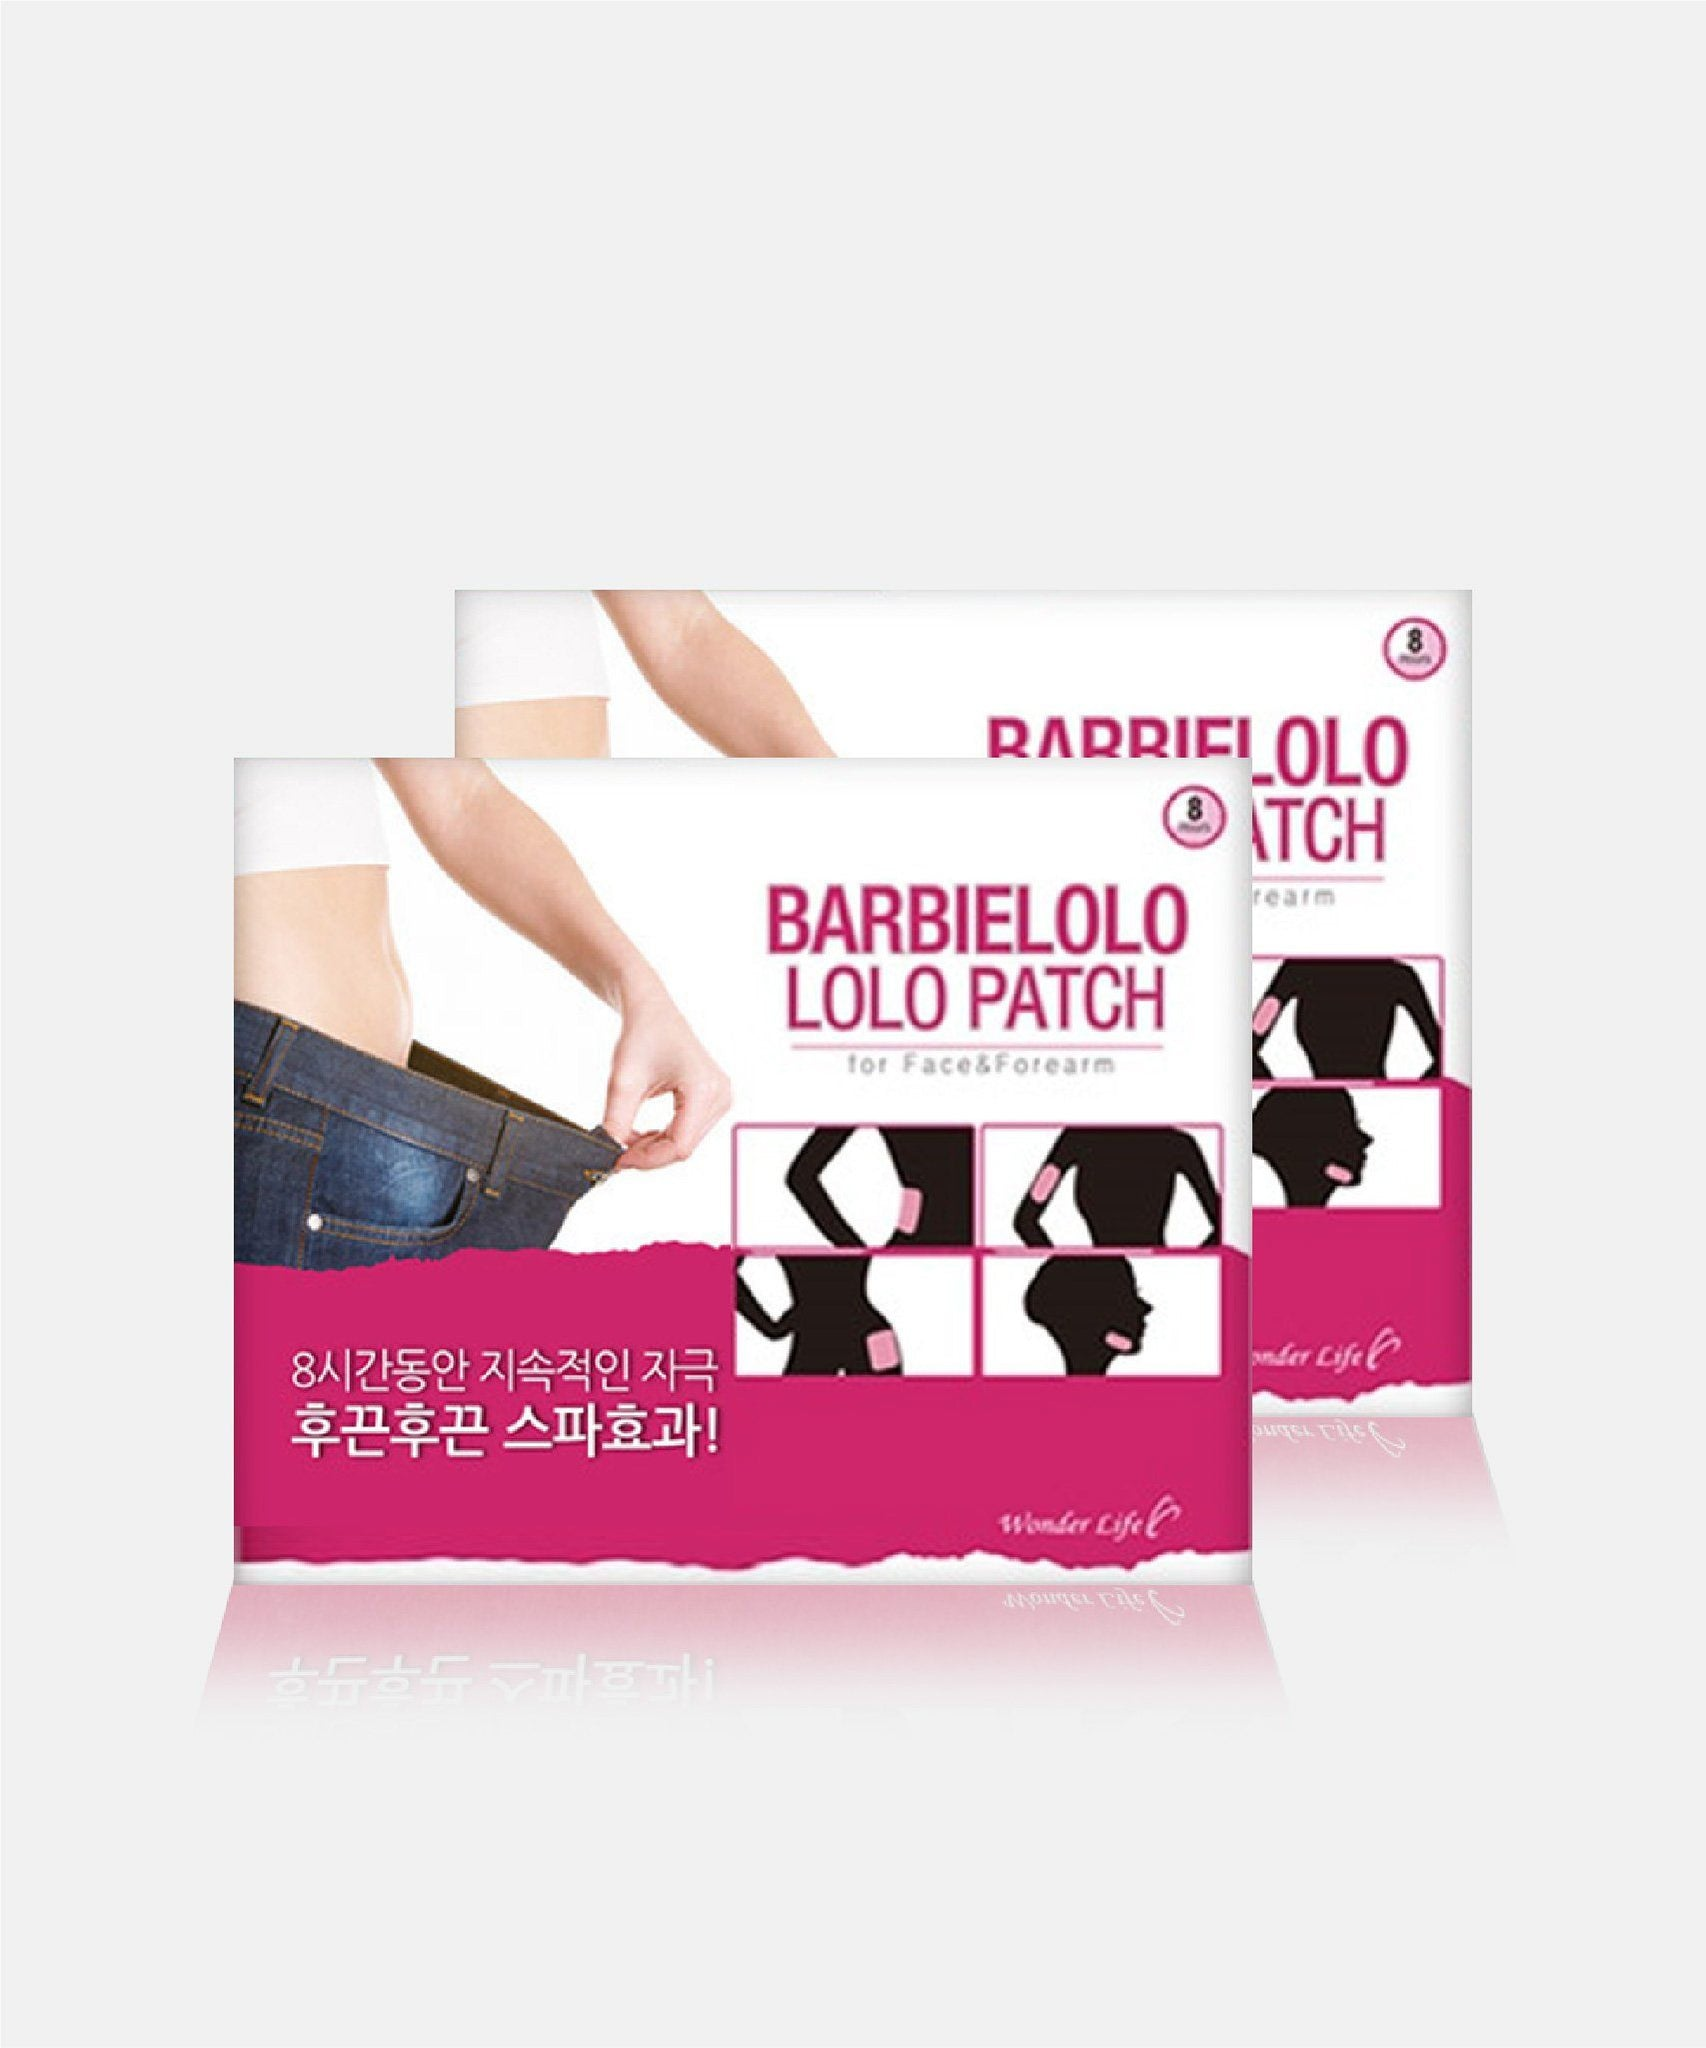 Twin Pack Jonlivia X BarbieLolo Lolo Patch - For Face and Forearm